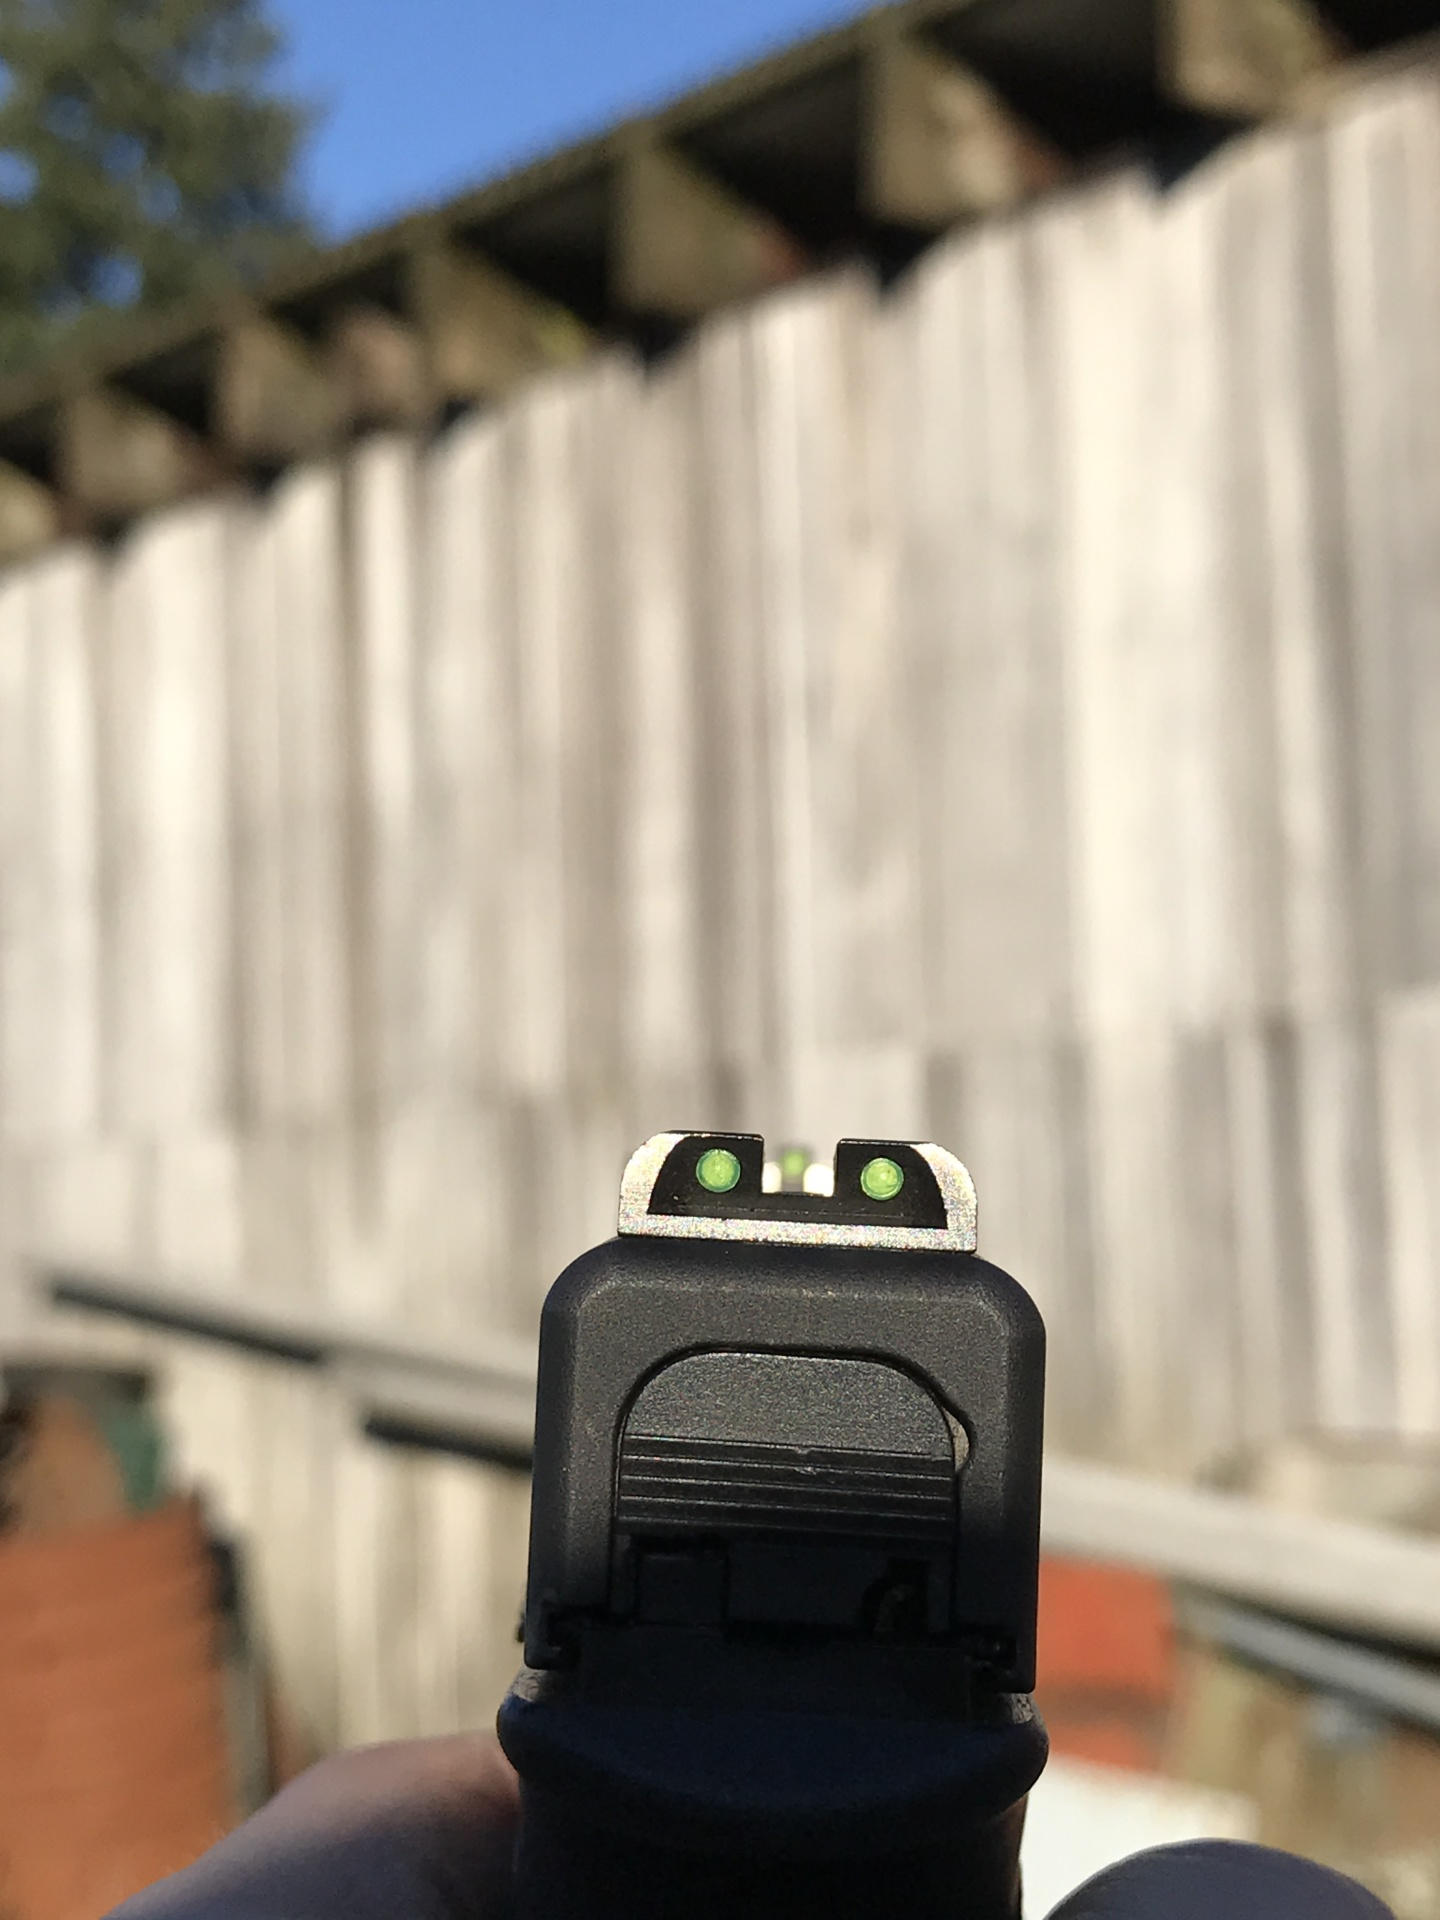 Glock 19 Sights CPS